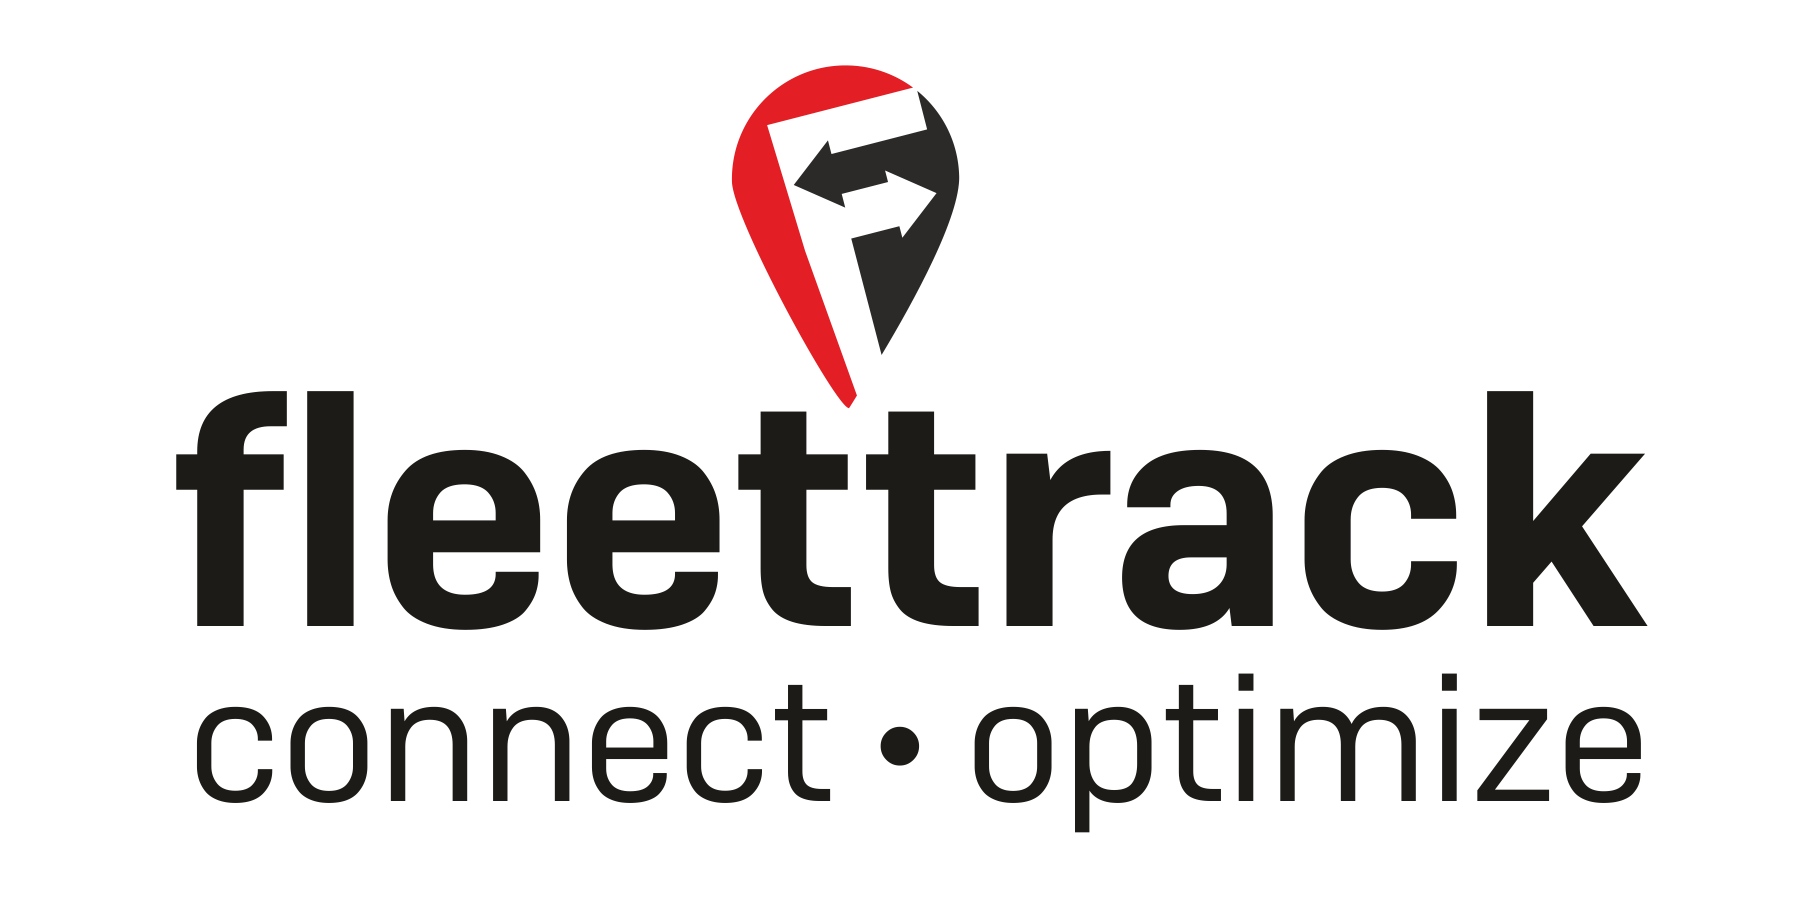 Fleettrack_logo